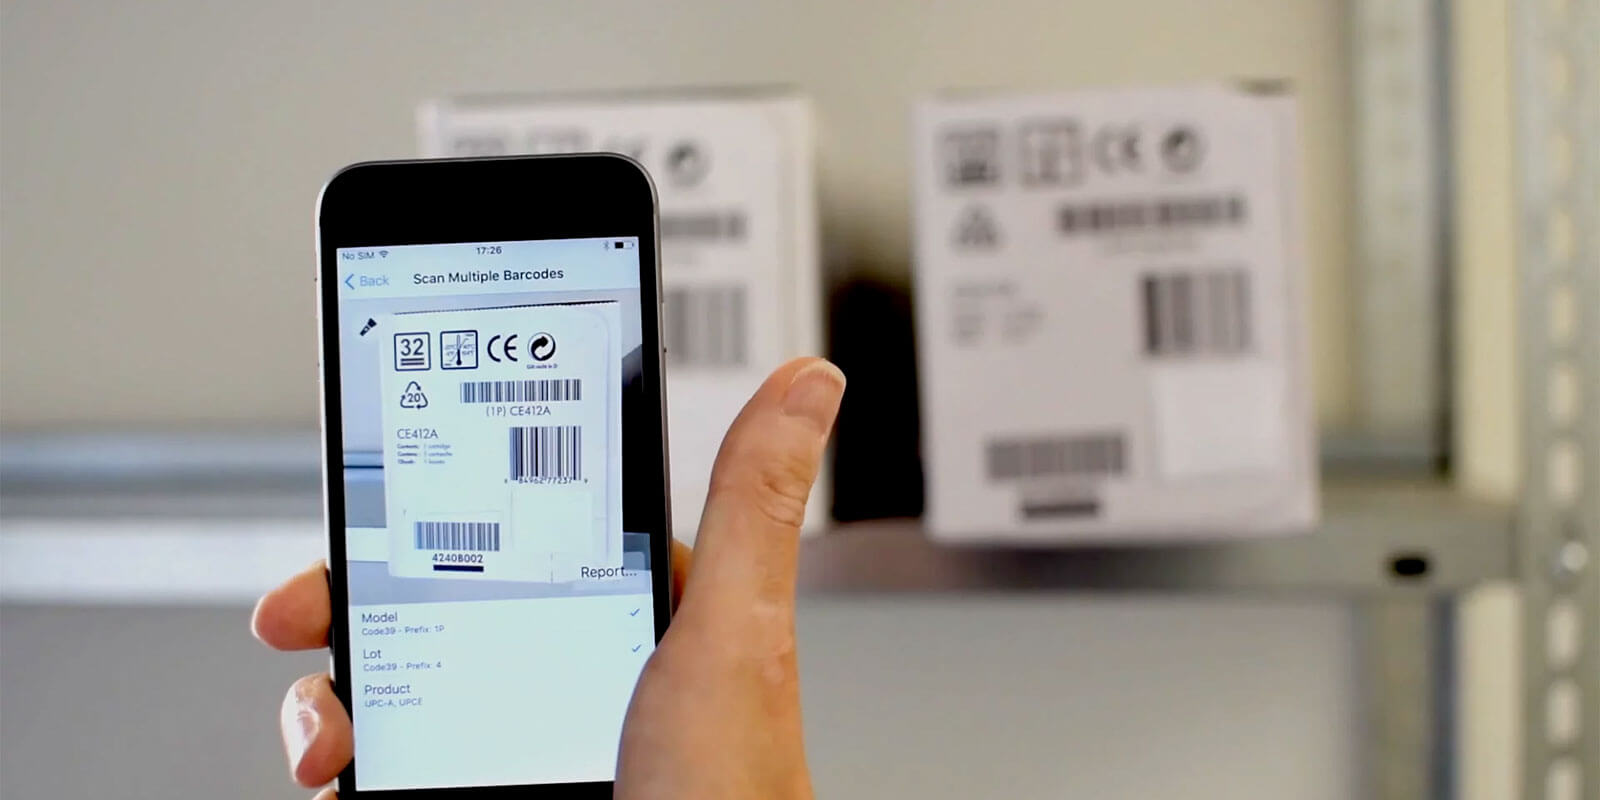 scan-multiple-barcodes